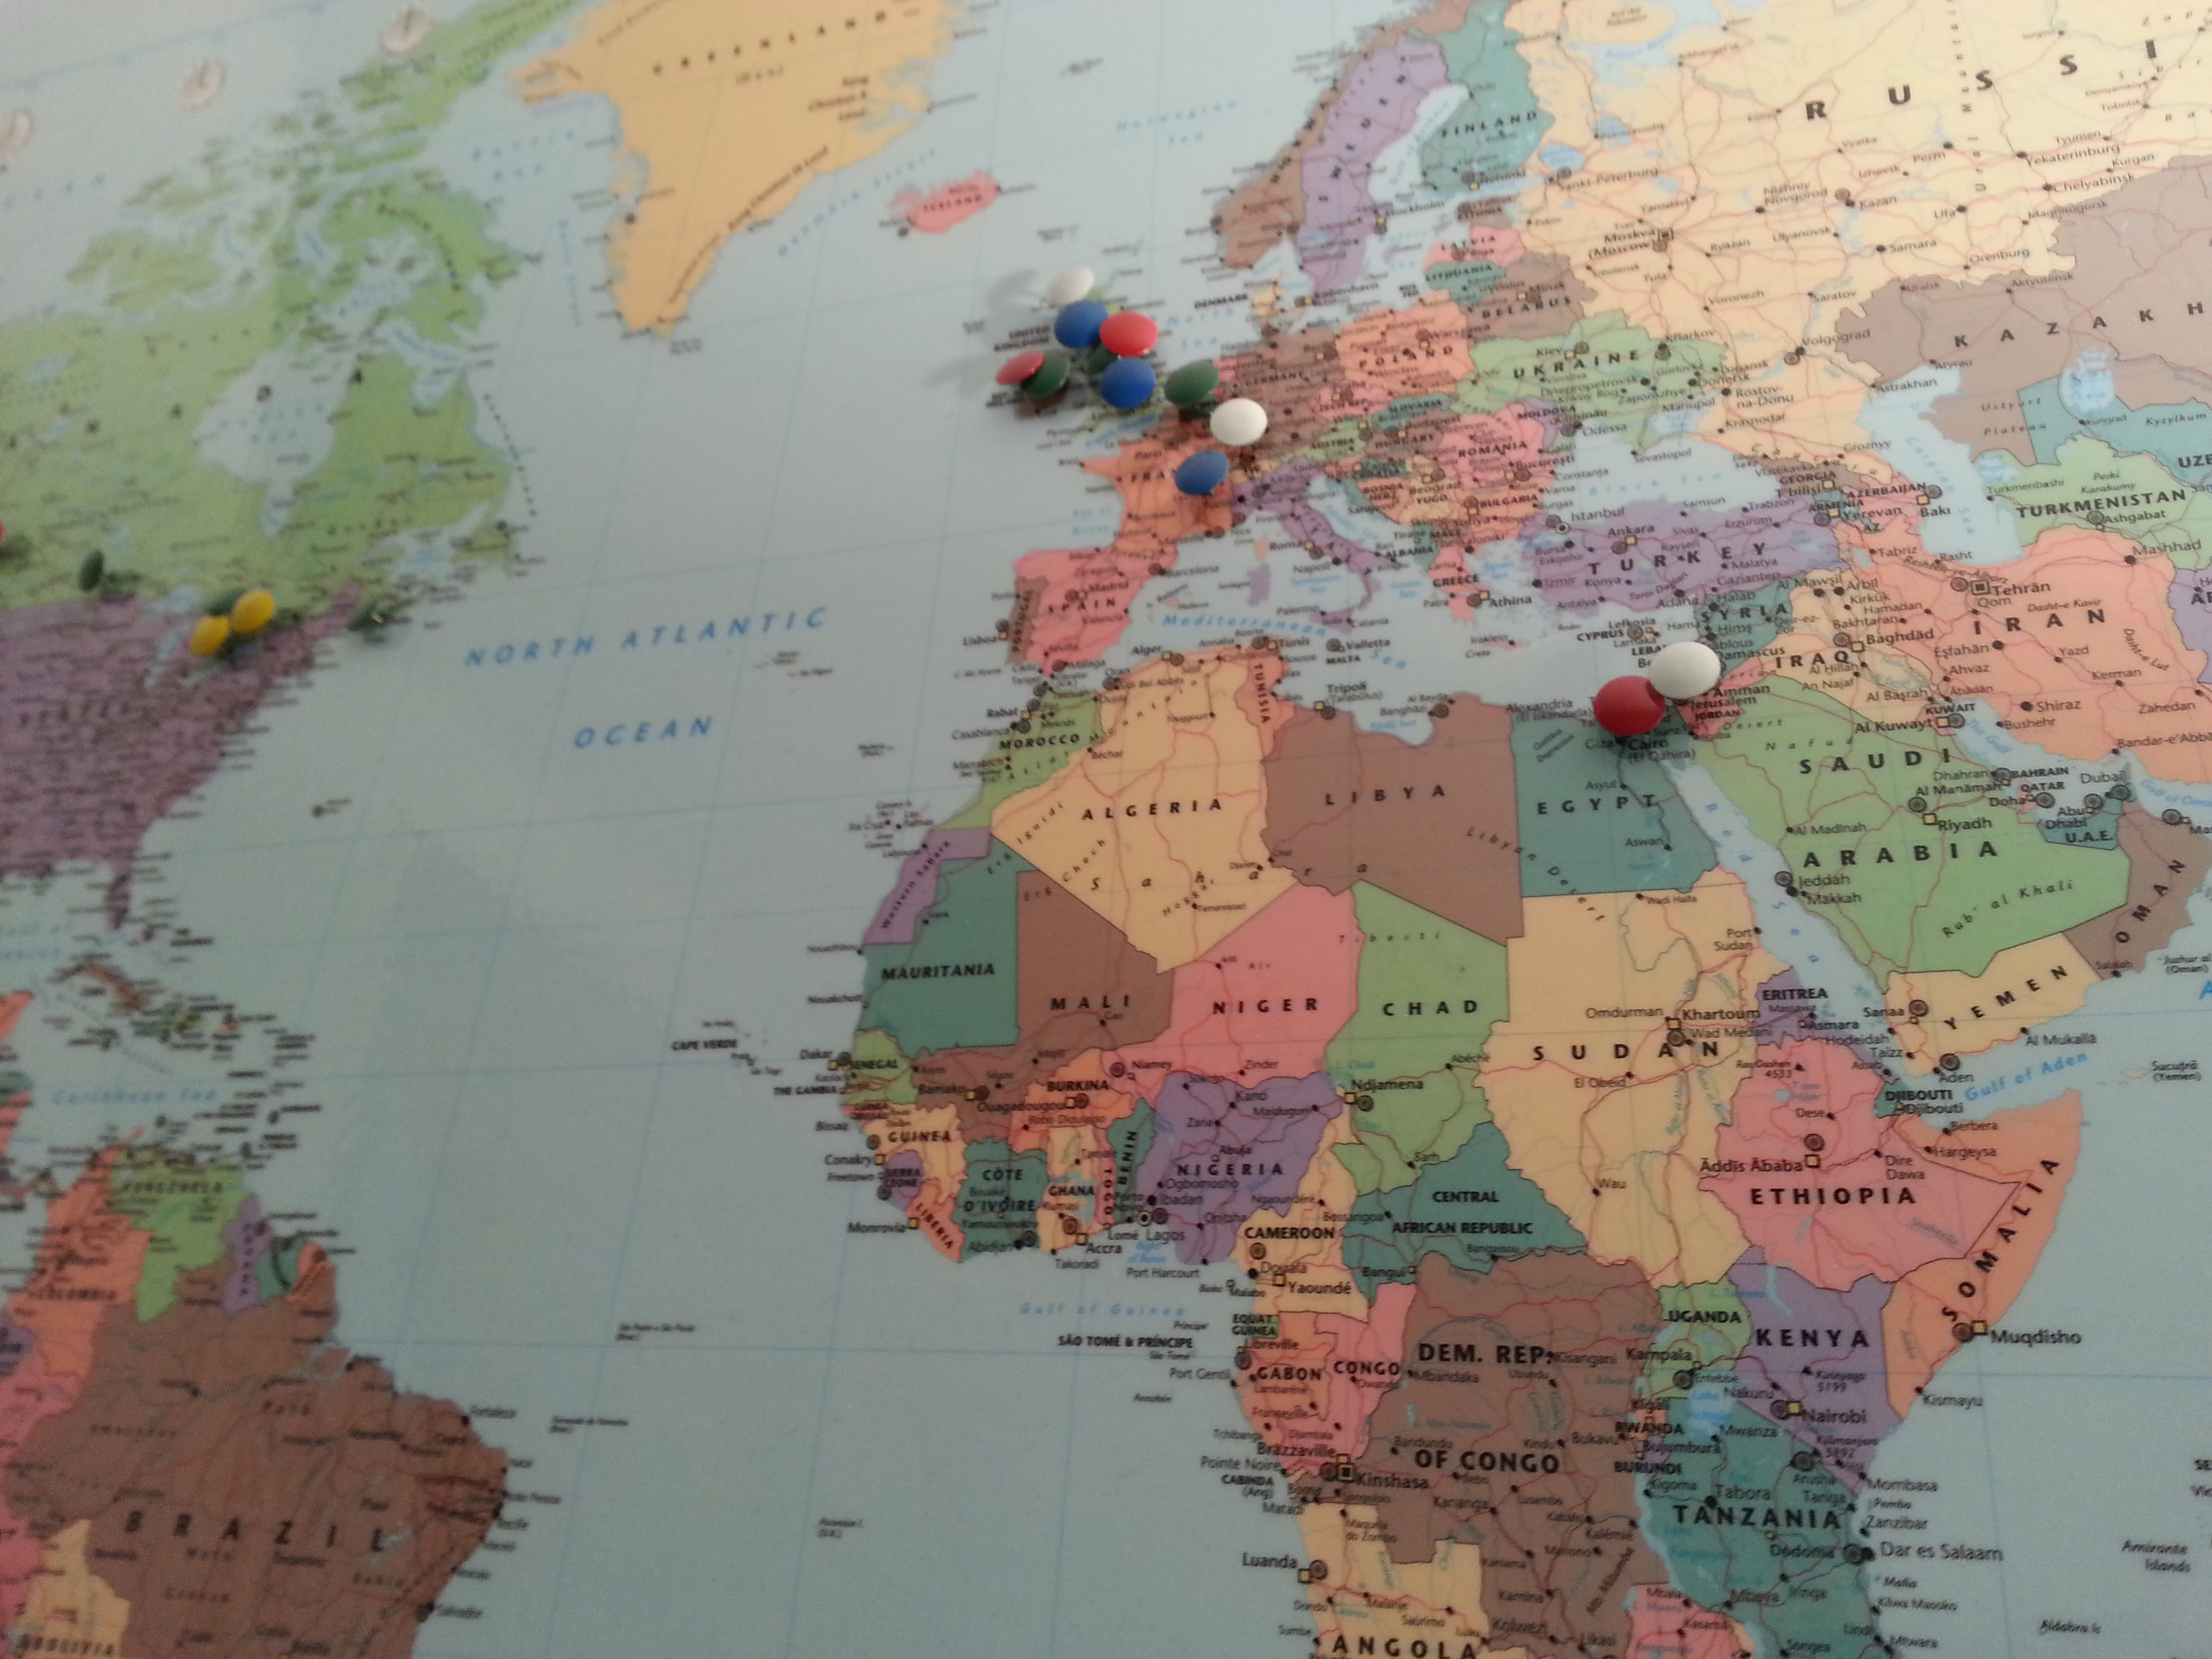 ...and we're global!